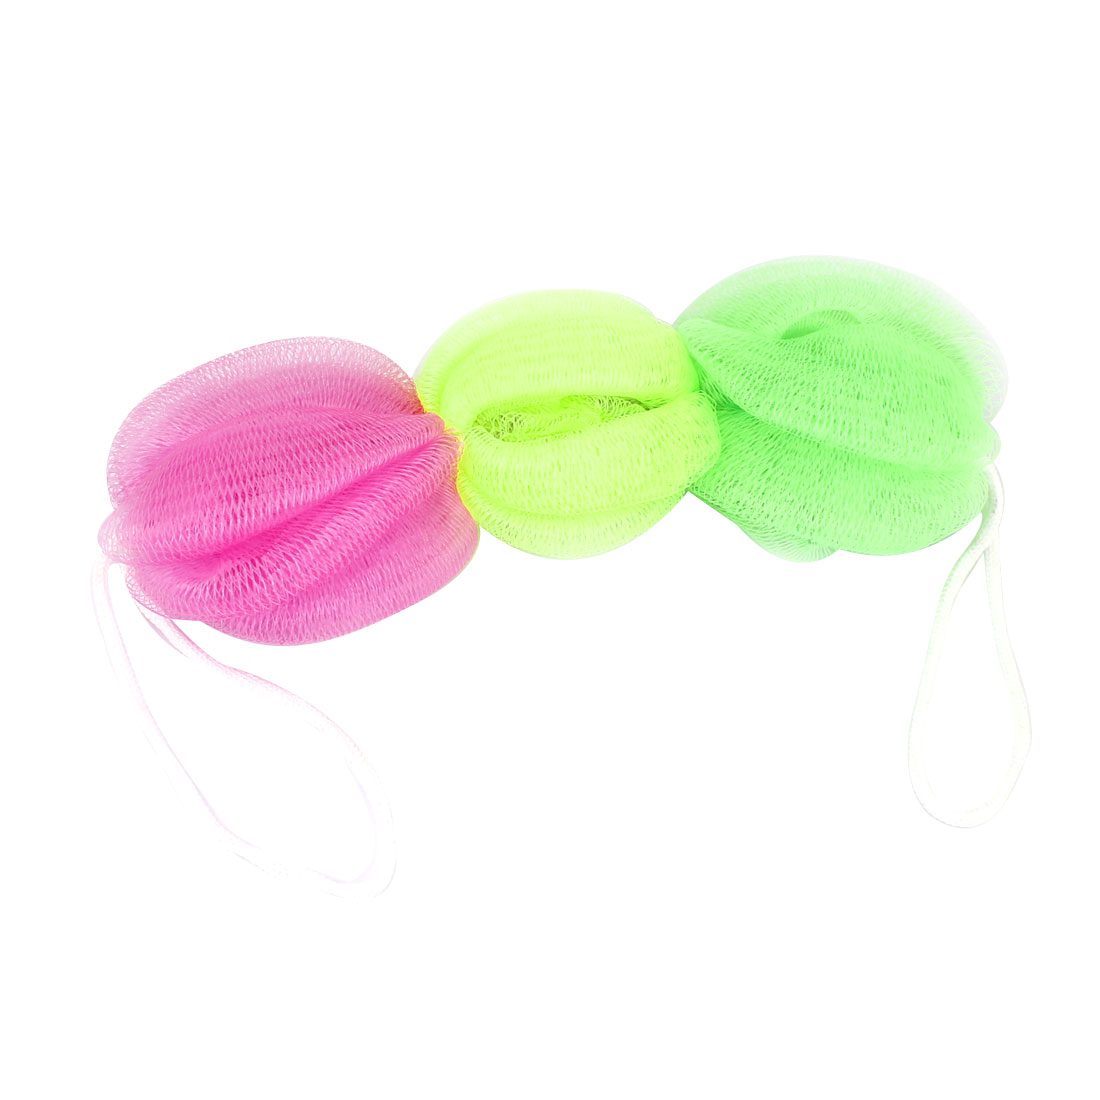 Body Cleaner Foam Bubbles Puff Scrubber Bath Shower Pouf Pink Bright Green